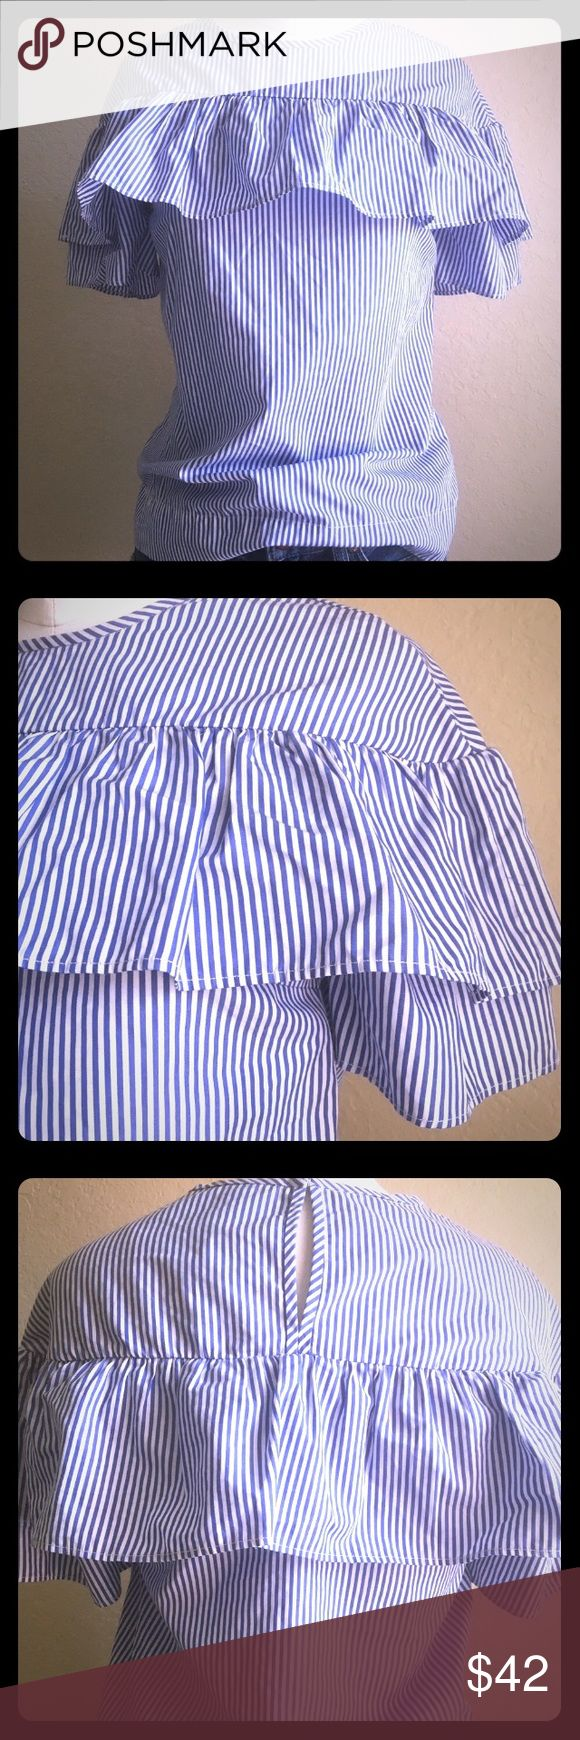 J. Crew Ruffle Blouse Adorable J. Crew ruffle blouse. Traditional oxford blue and white stripes. Perfect with a pencil skirt for the office or wear it casual with jean shorts and wedges!! Size 00 (fits XXS). Brand new with tags!!! J. Crew Tops Blouses